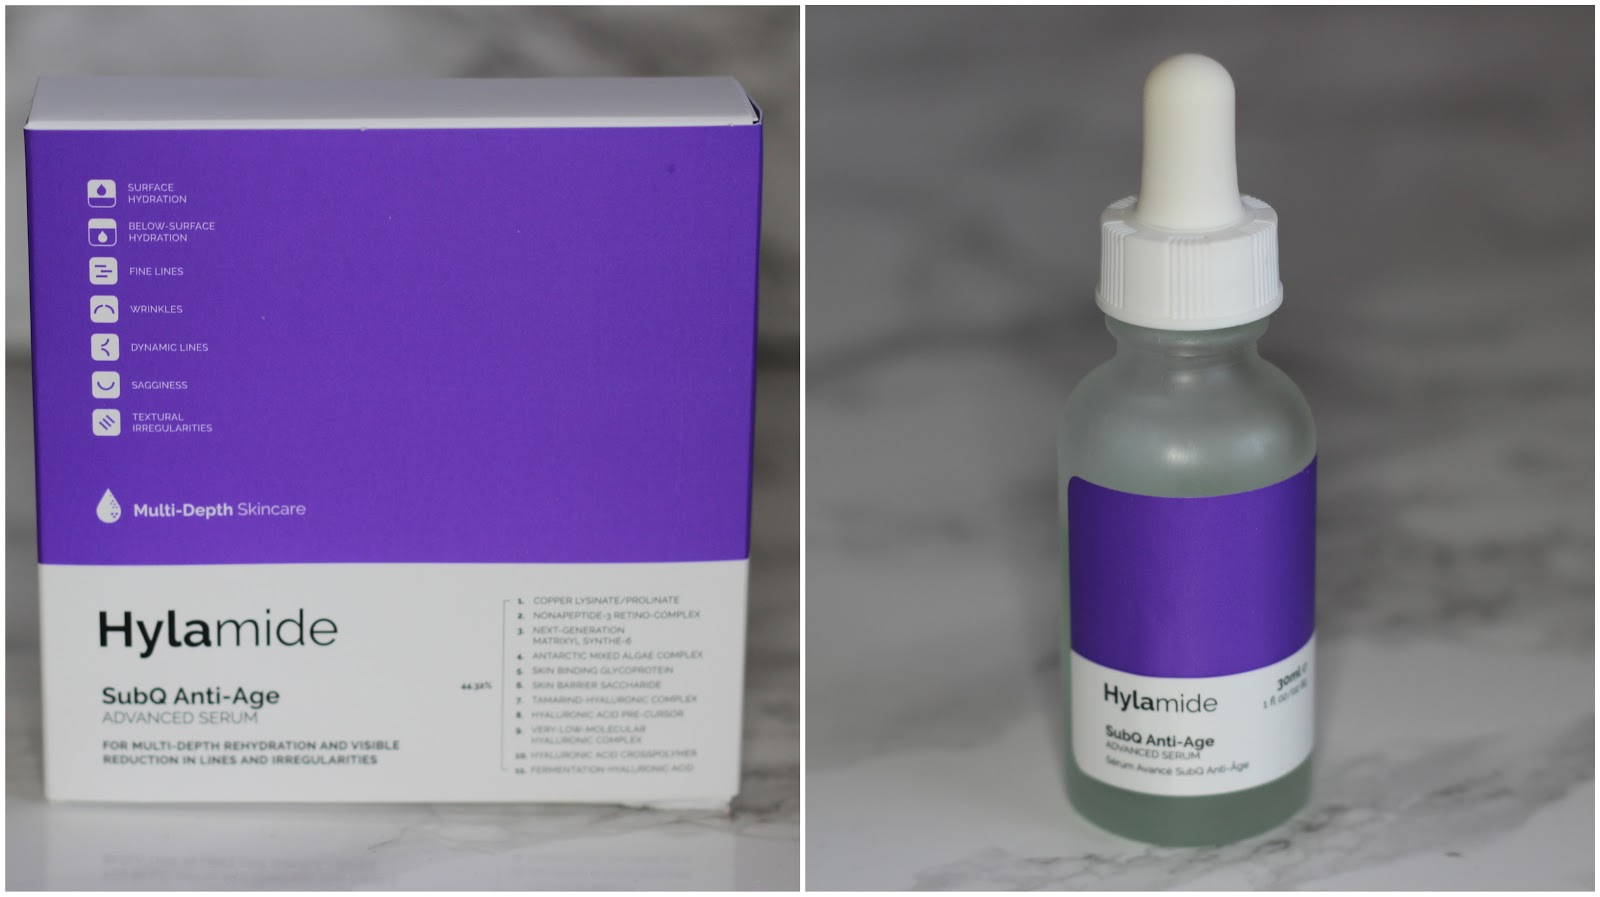 REVIEW: Hylamide SubQ Anti-Age - Obsessed By Beauty